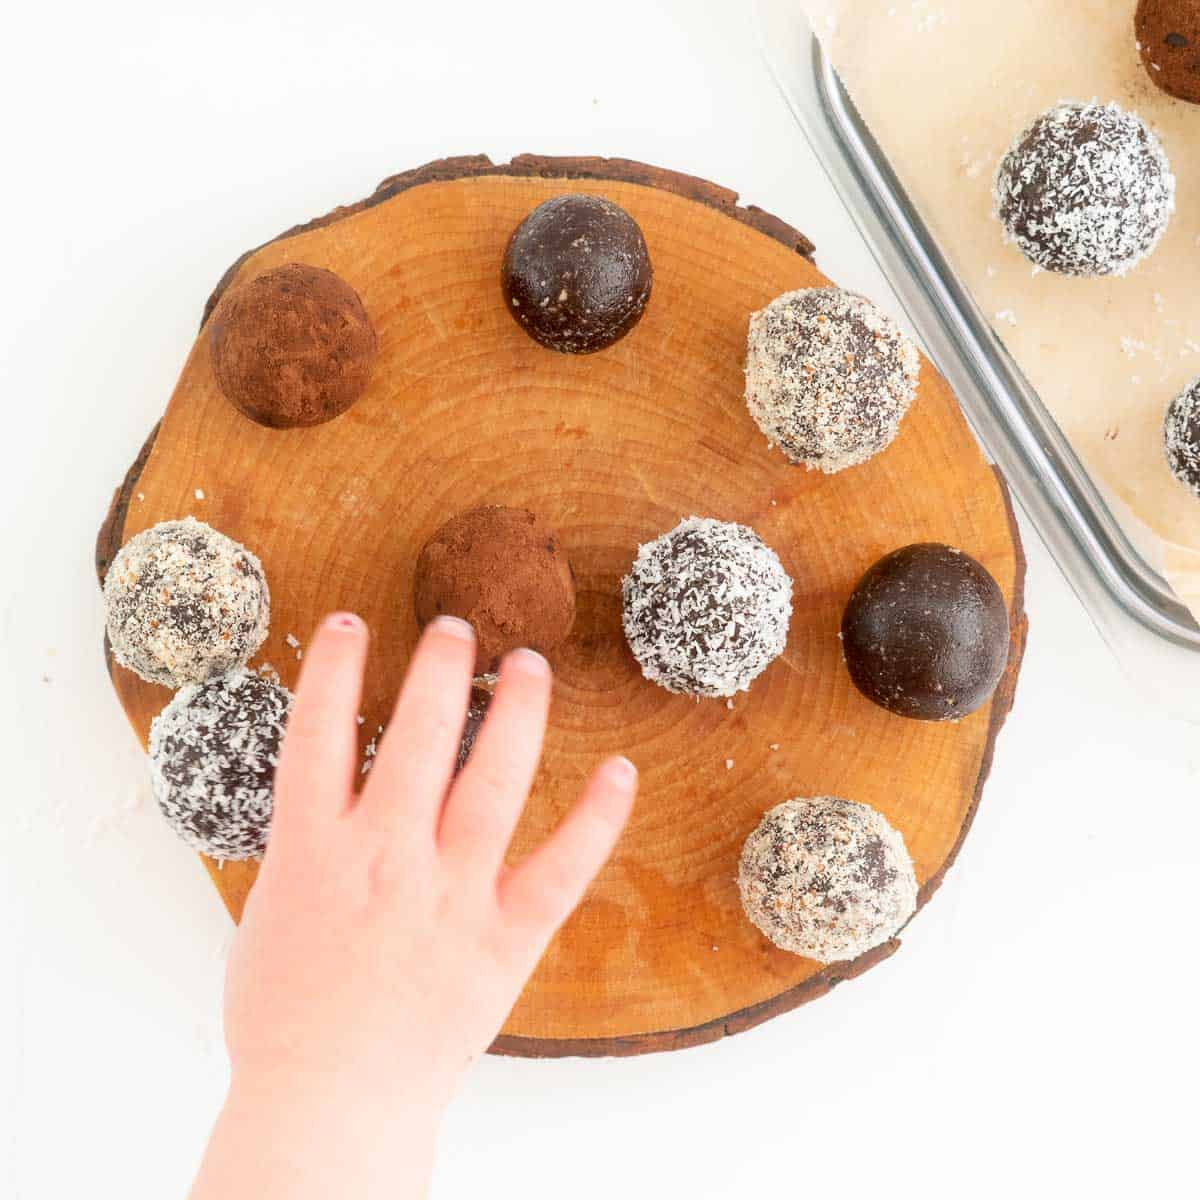 A child's hand reaching for a chocolate bliss ball.